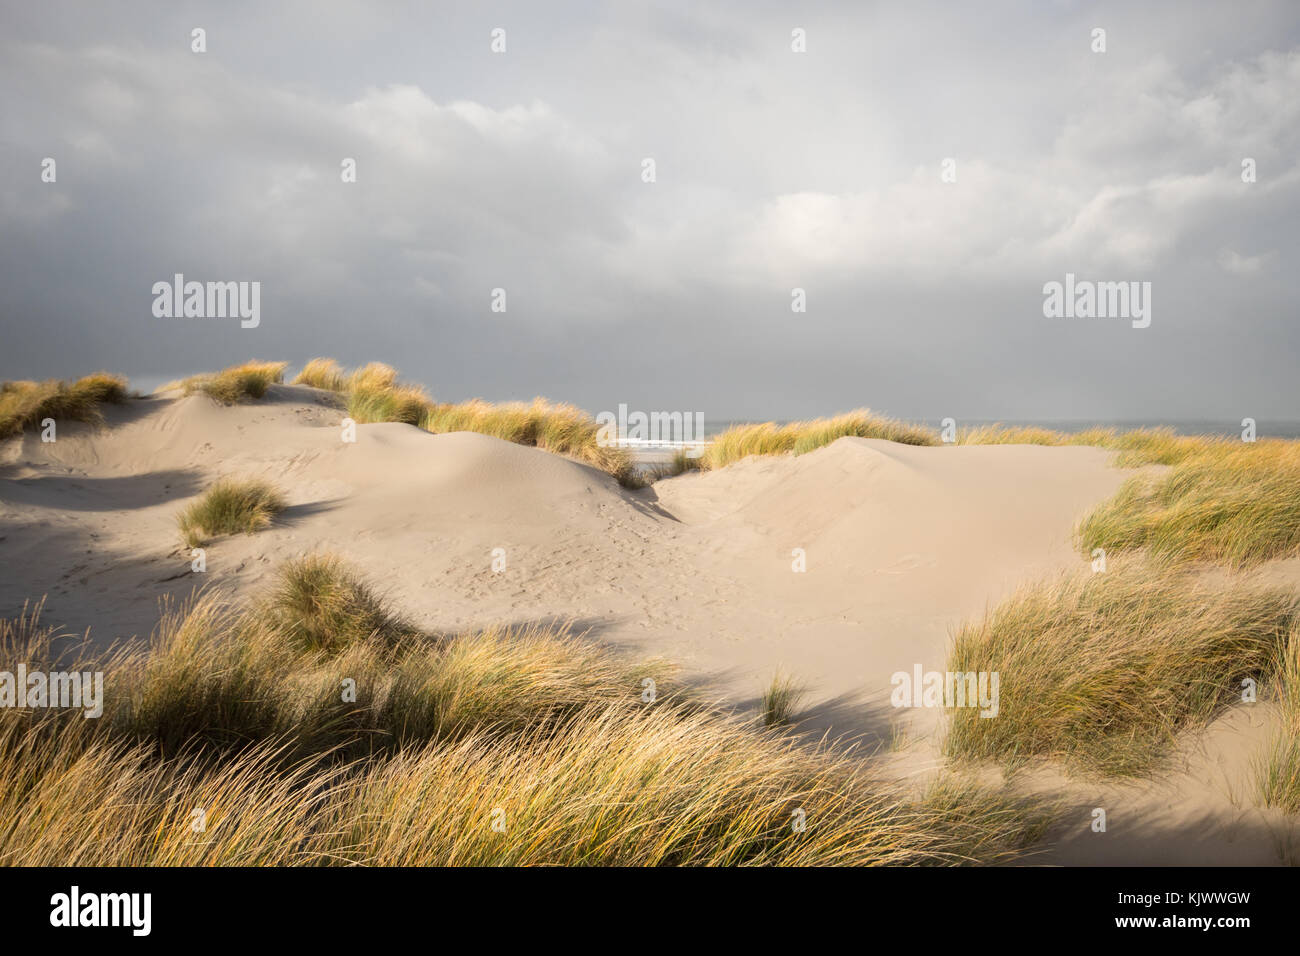 Dark clouds above the sea, the dunes in the foreground are still in the sun. - Stock Image